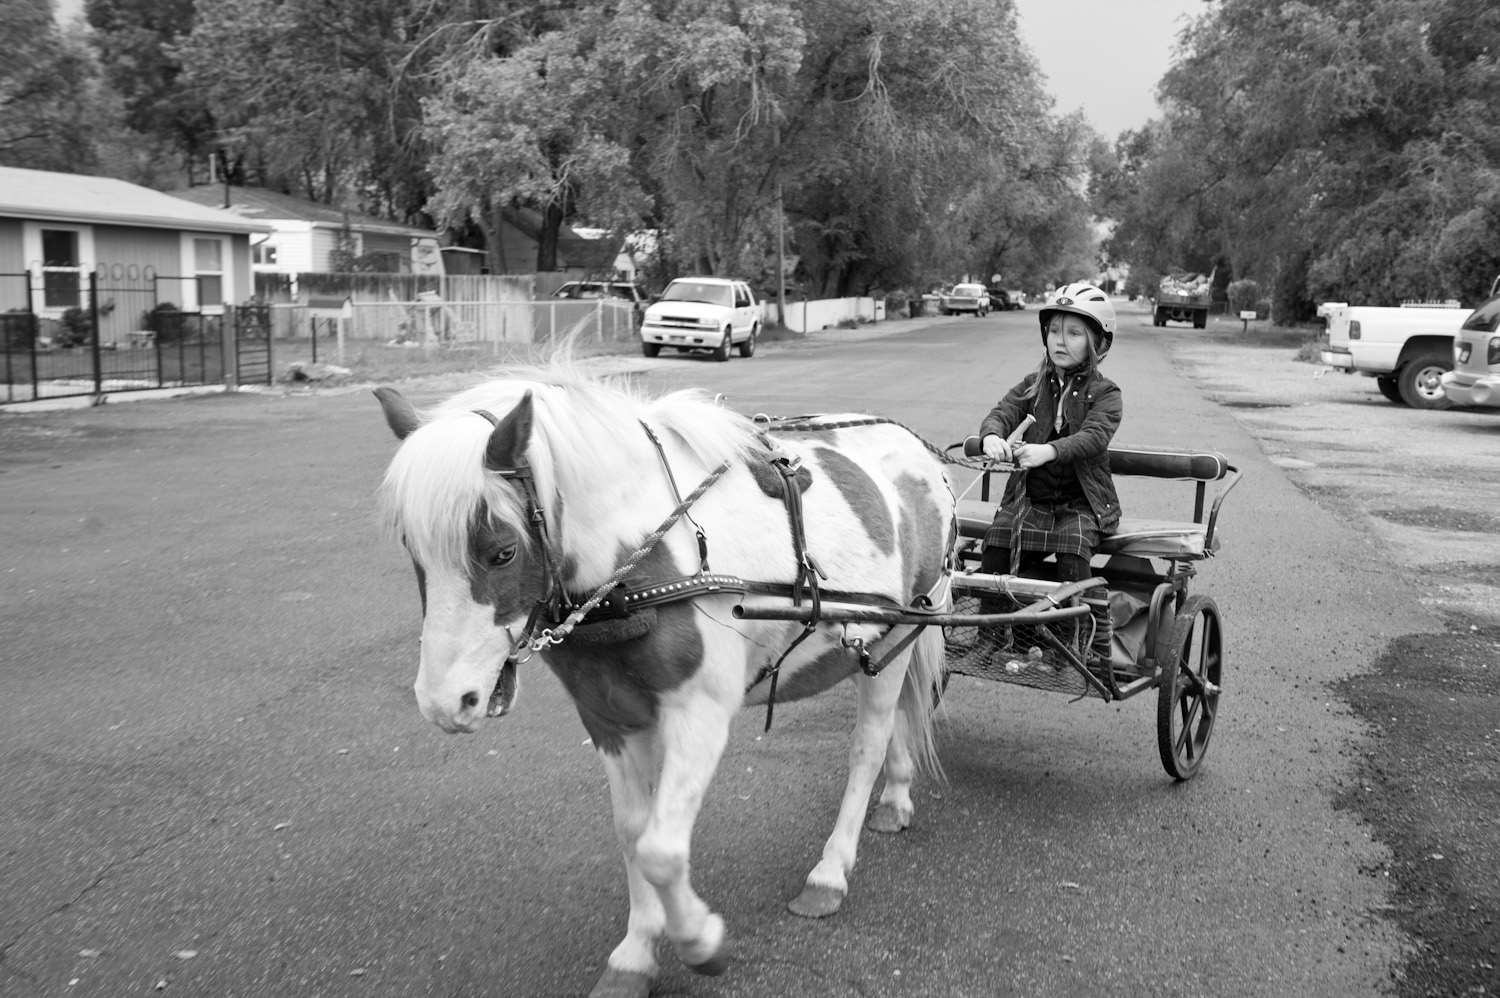 Willow Alexander rides a pony-drawn cart to school.